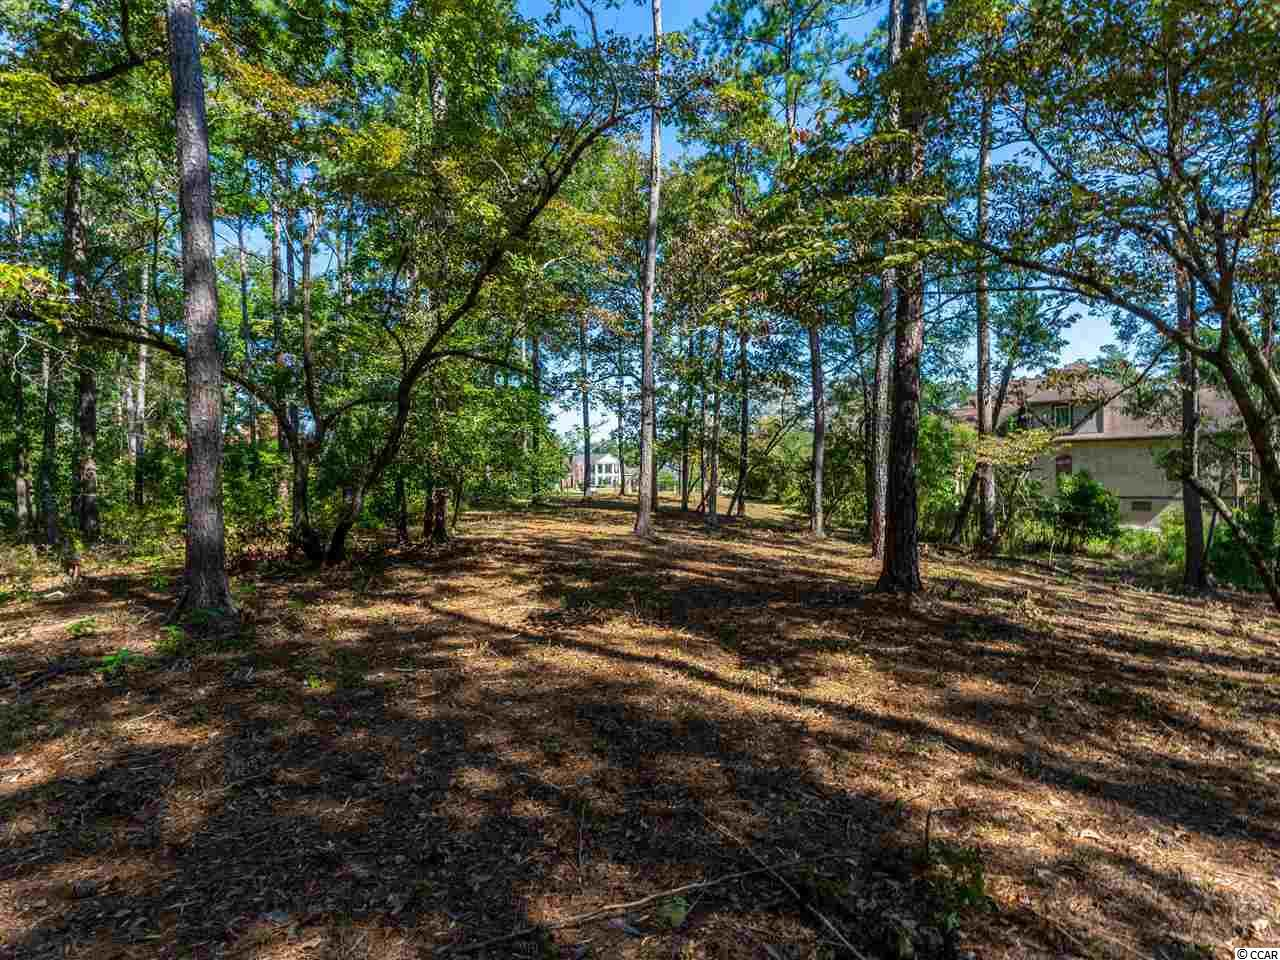 Imagine a beautiful, tranquil, tucked away retreat that is just 15 minutes from the beach!  Can the setting for your new home possibly get any better than this?!  Well…how about a 2.20 acre WATERFRONT lot on Collins Creek in Creek Harbour, a private, gated, upscale Intracoastal Waterway community??!!  Build your own dock and cruise the scenic ICW with all that it has to offer, including Winyah Bay and Atlantic Ocean access!    Community amenities include a large swimming pool, cook-out gazebo, clubhouse with kitchen, playground area, 150 ft. floating community dock, boat/RV storage, and boat ramp with day docks.  Very convenient to the shopping, restaurants, and live music of Murrells Inlet's popular Marsh Walk, as well as Brookgreen Gardens, Huntington Beach State Park, and Pawleys Island.  Or head up Rt 31 to enjoy Myrtle Beach and the North Strand's shopping, eating, and live entertainment venues.